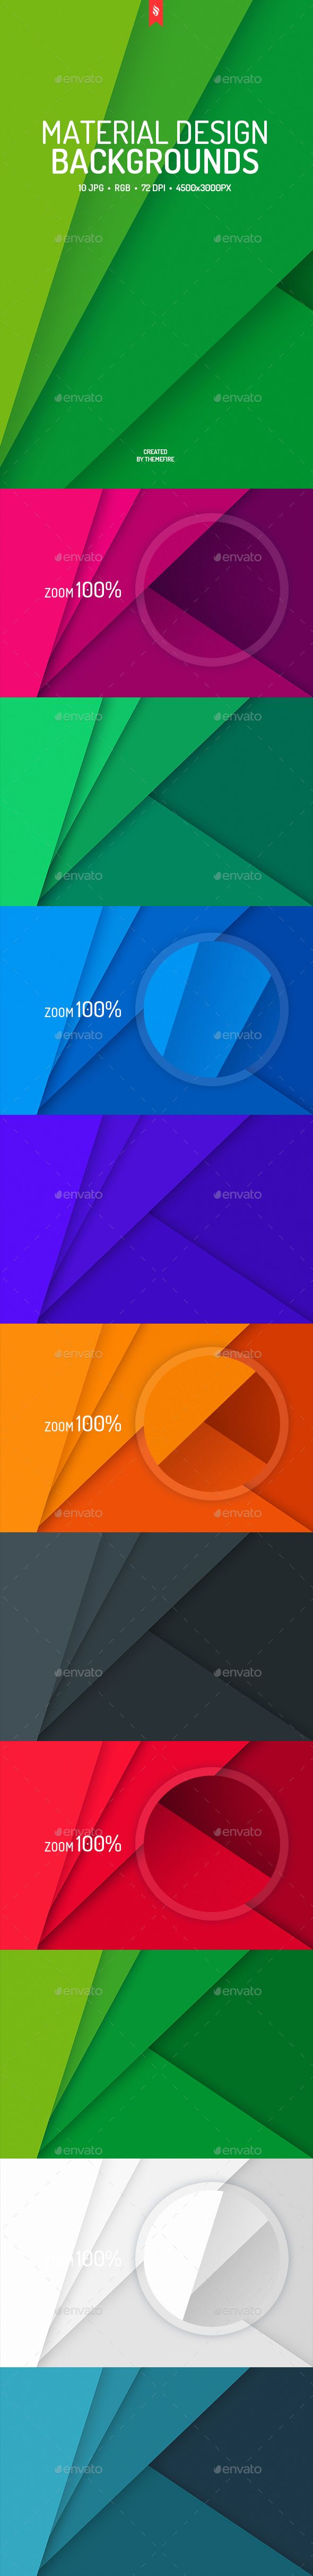 Flat Material Design Backgrounds by themefire This pack contains 10 jpg flat material design backgrounds for your projects. You can use these backgrounds in the different purpo